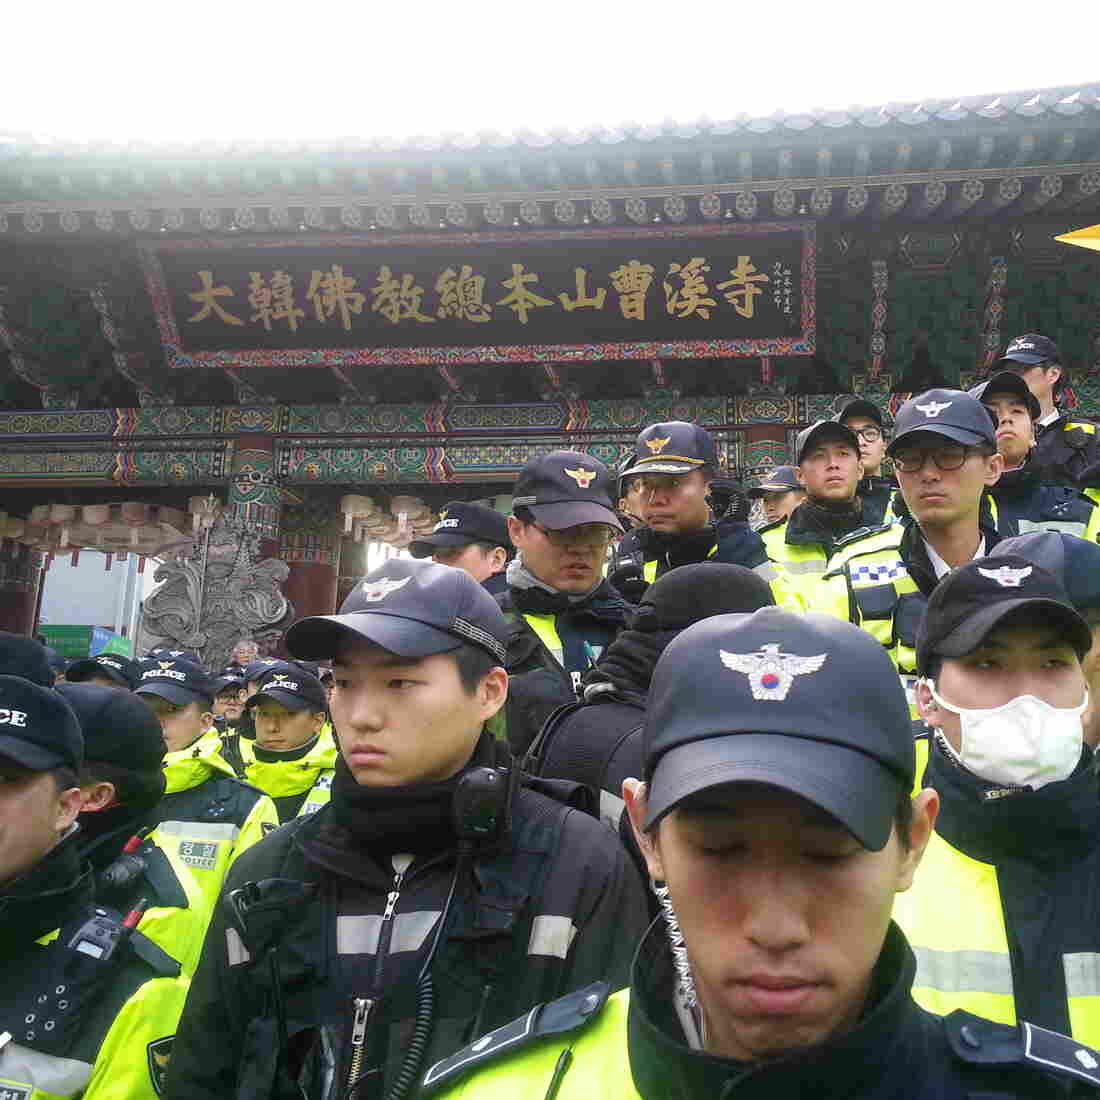 In Seoul, A Showdown Ends Between Police And Buddhist Monks